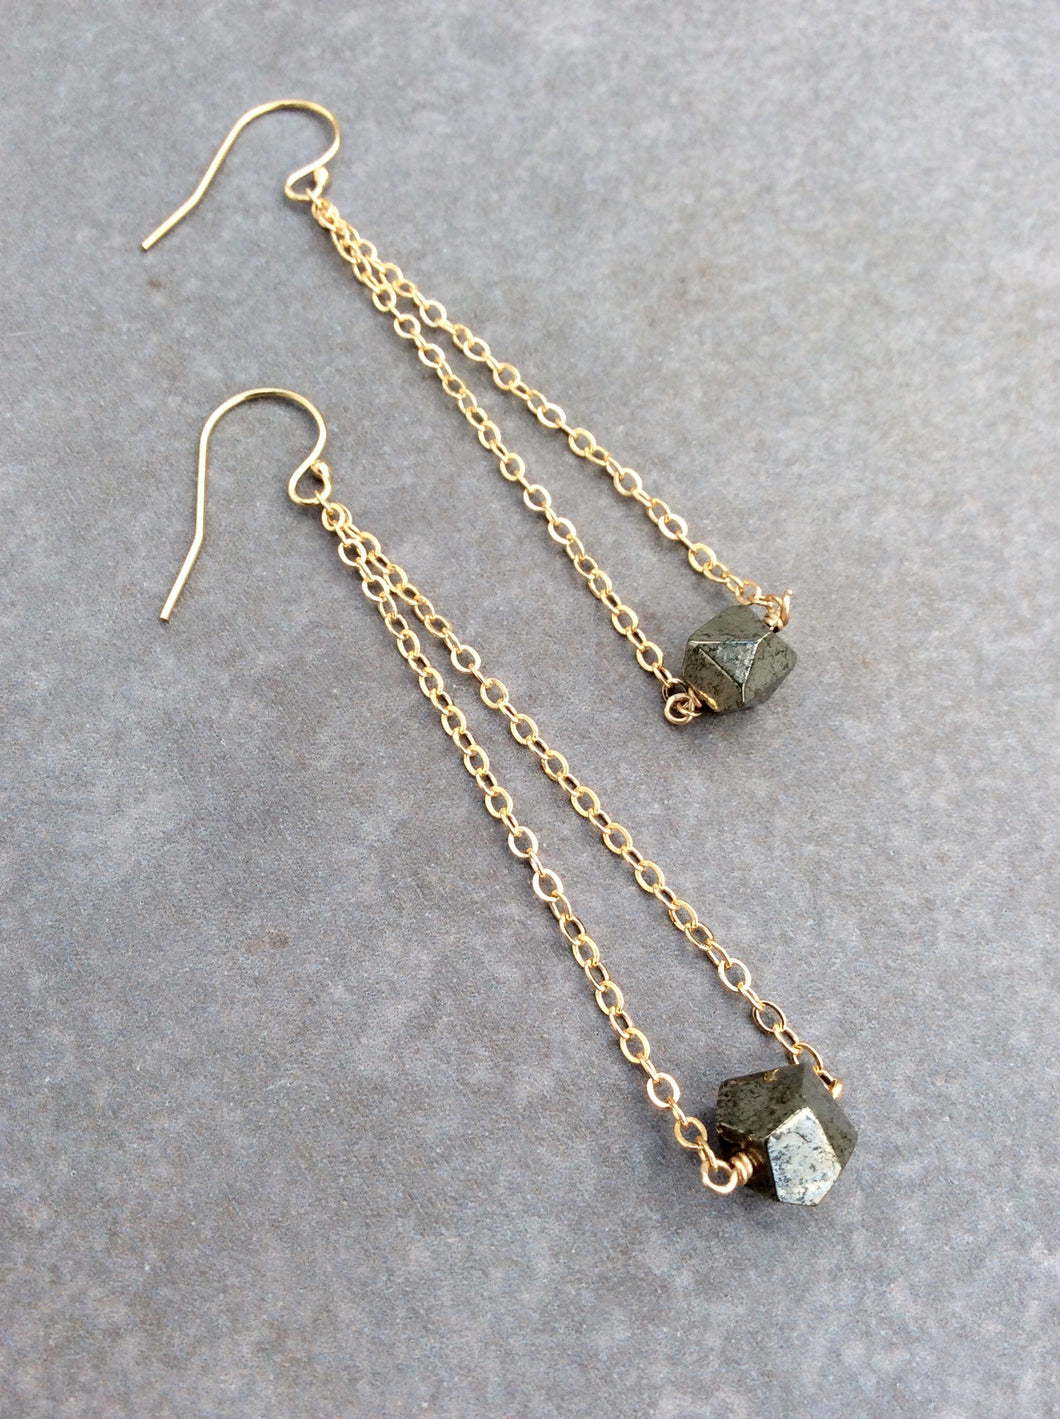 Round Faceted a Pyrite Chandelier Earrings